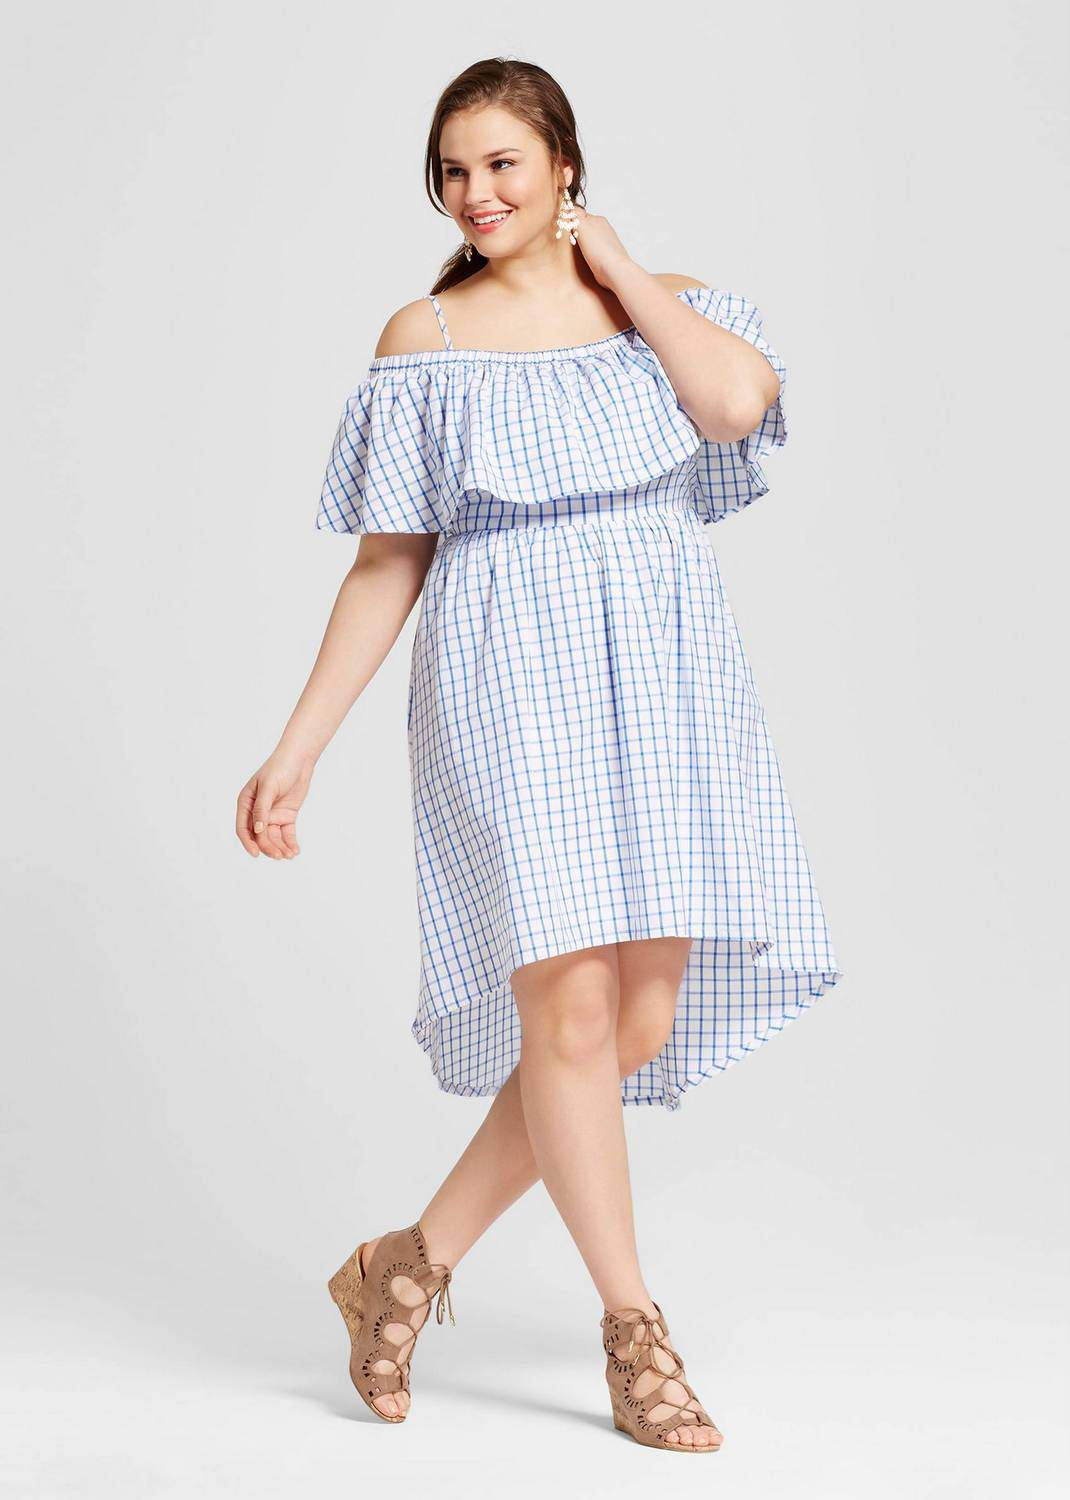 For The Love Of Gingham 14 Plus Size Picks Youll Want To Rock Now